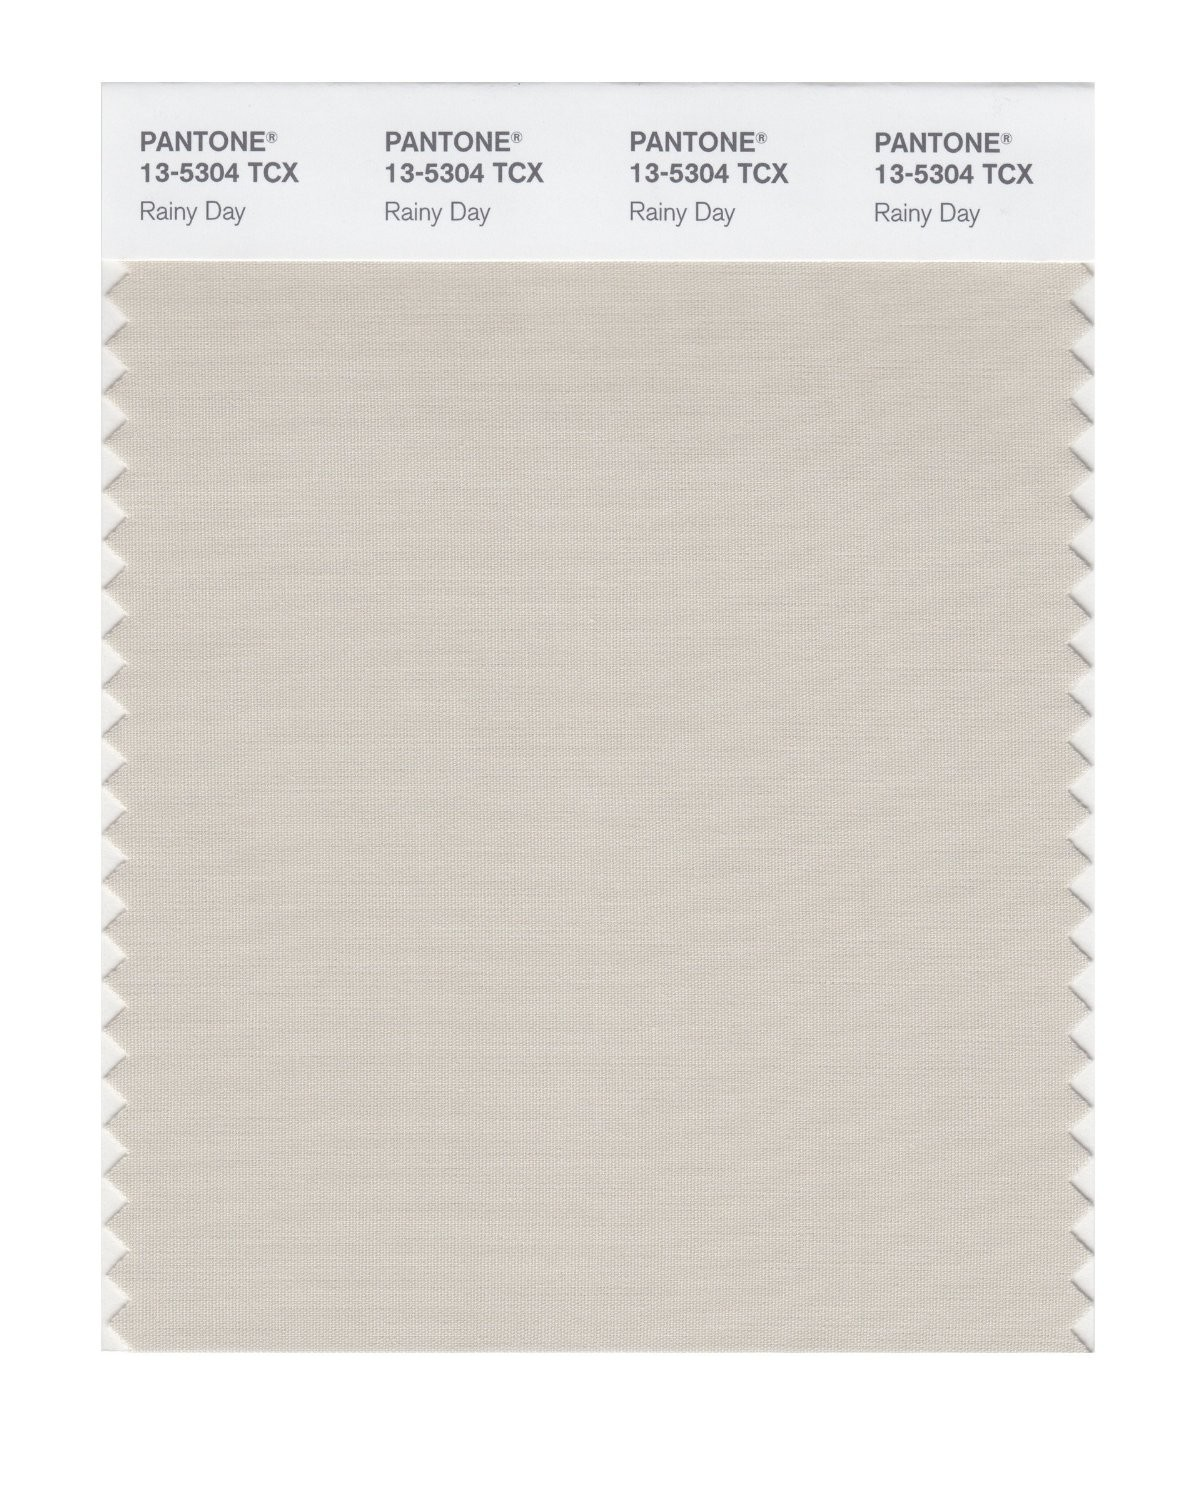 Pantone 13-5304 TCX Swatch Card Rainy Day